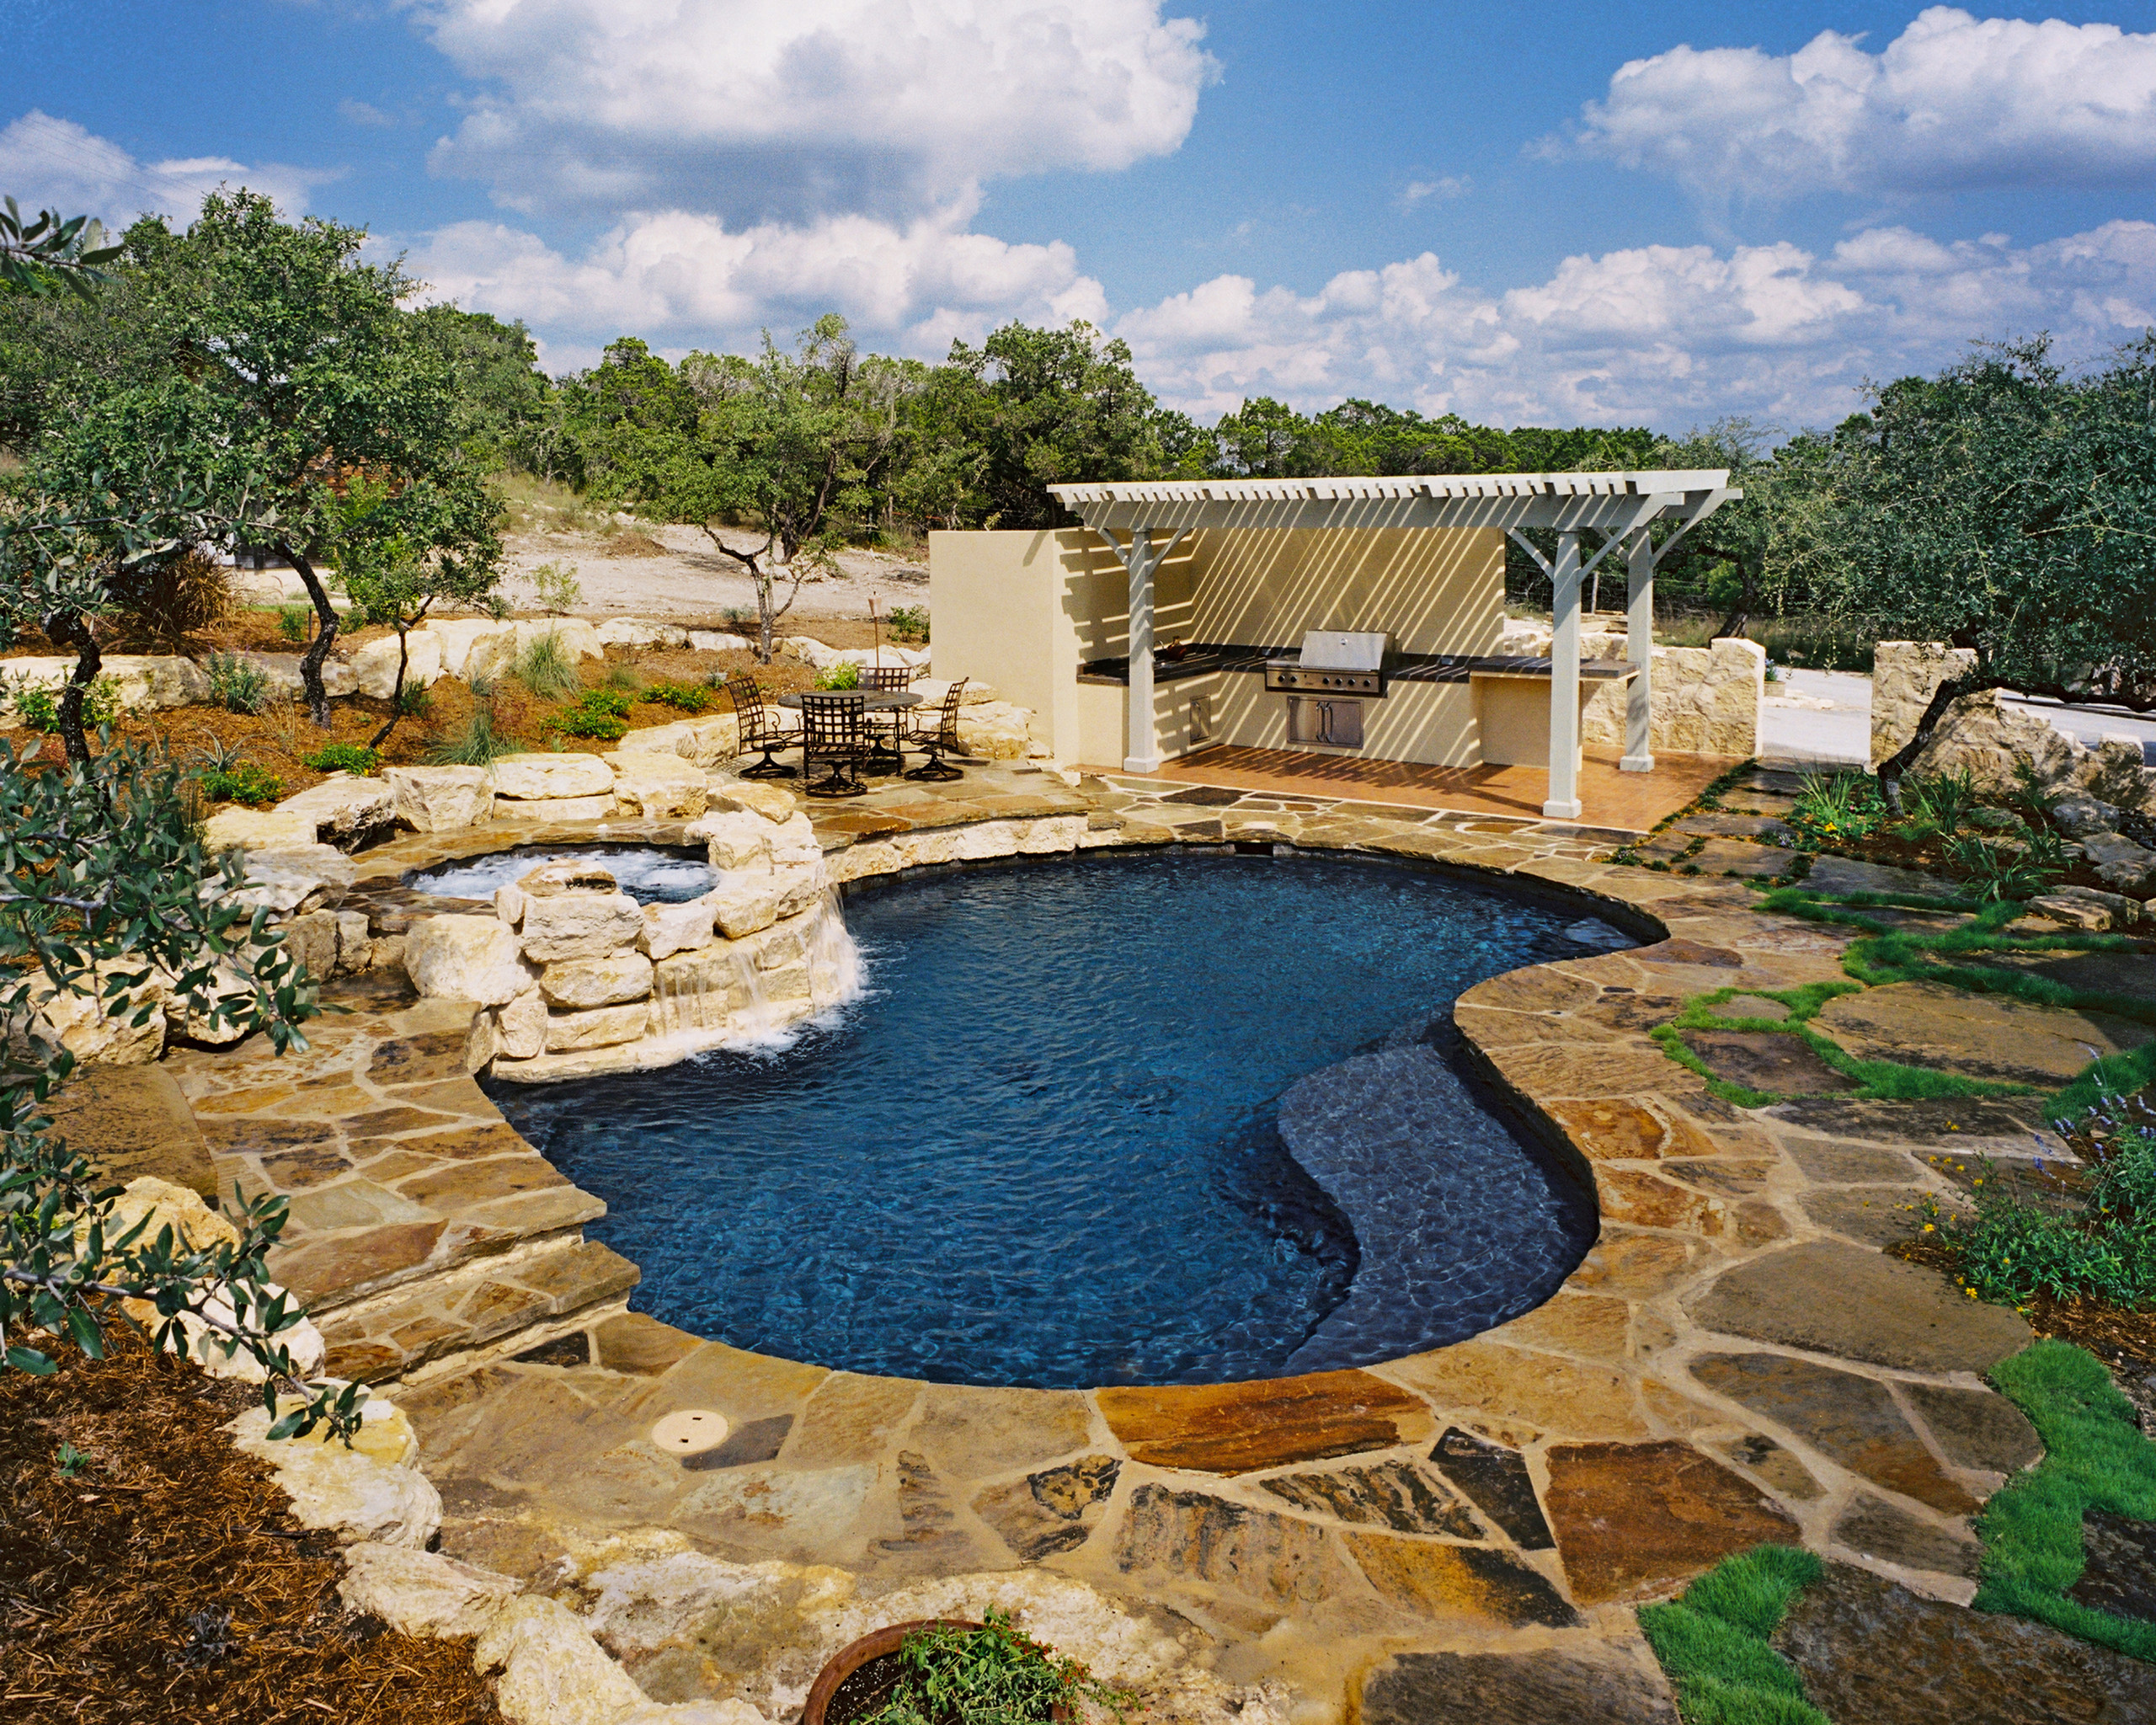 Boerne Natural/Freeform Pool/Spa/Outdoor Kitchen/Arbor